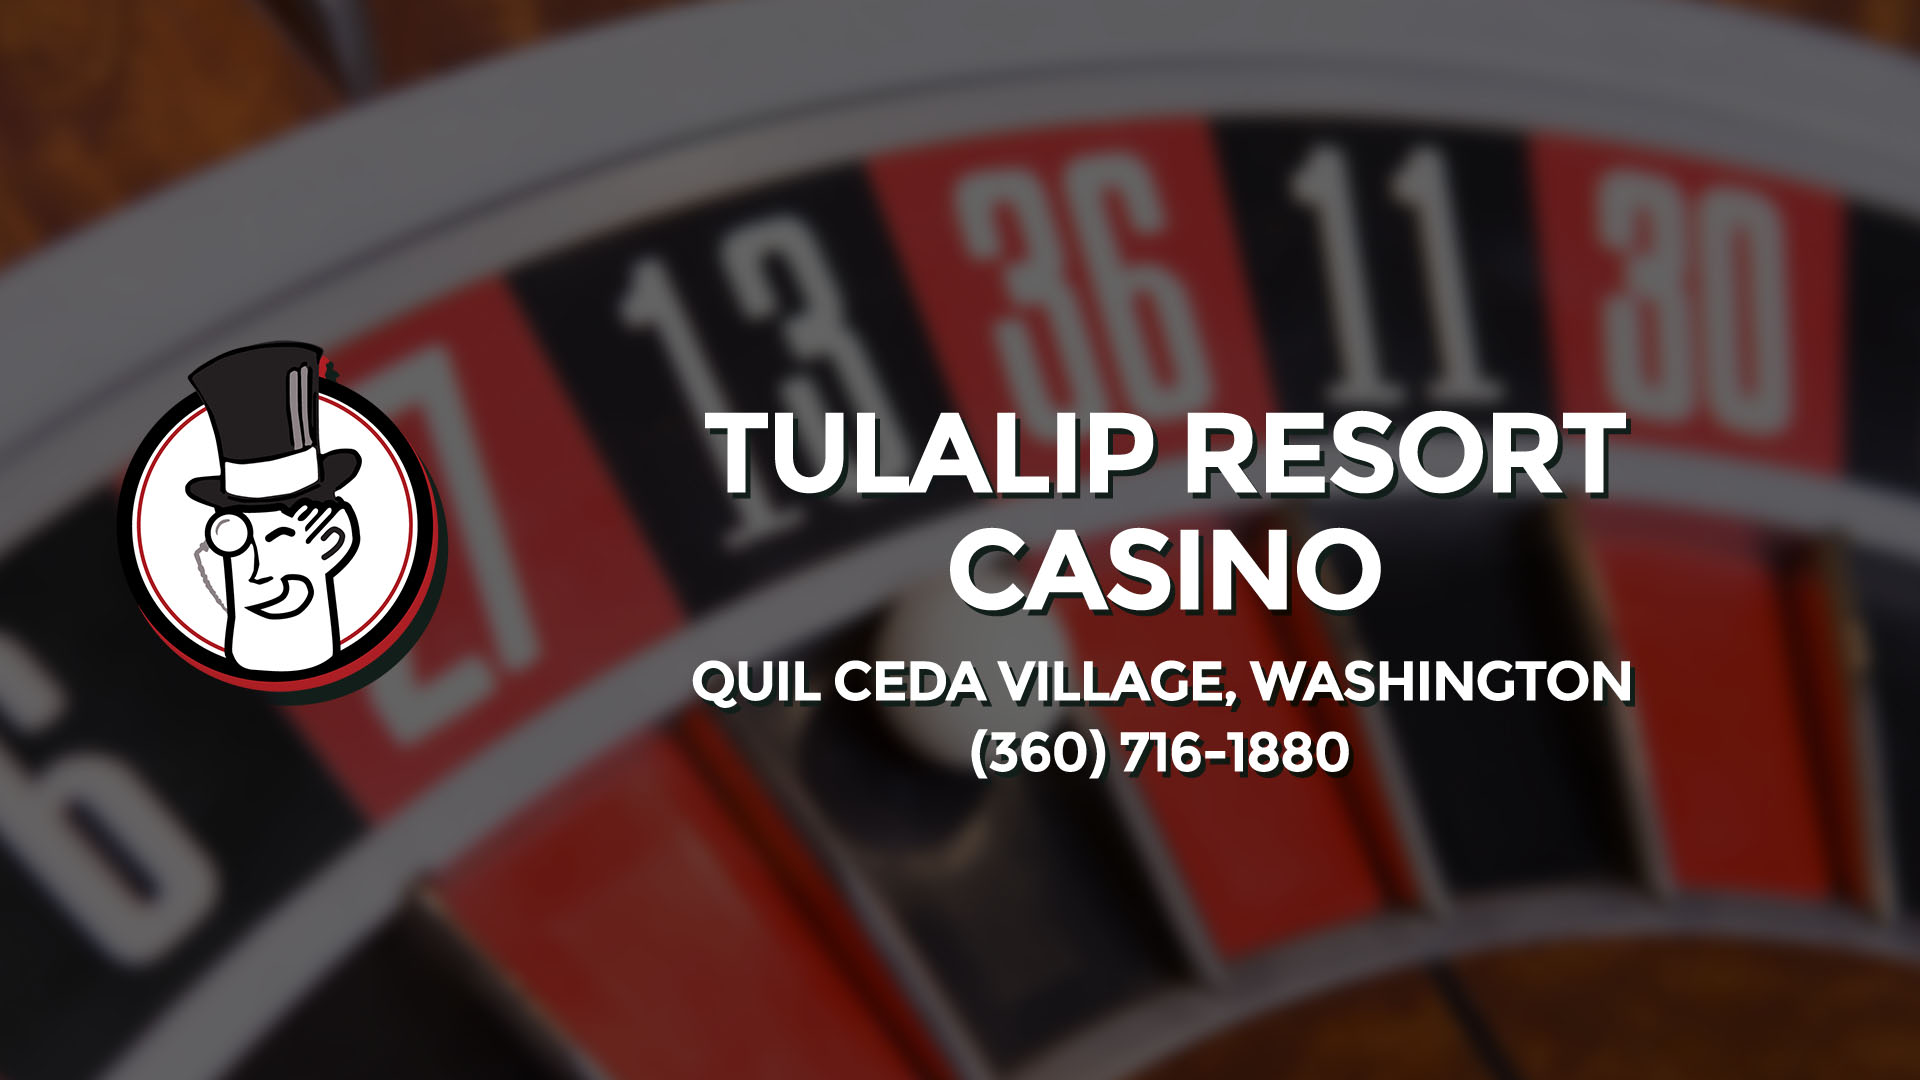 Transportation to tulalip casino bejeweled 2 games online